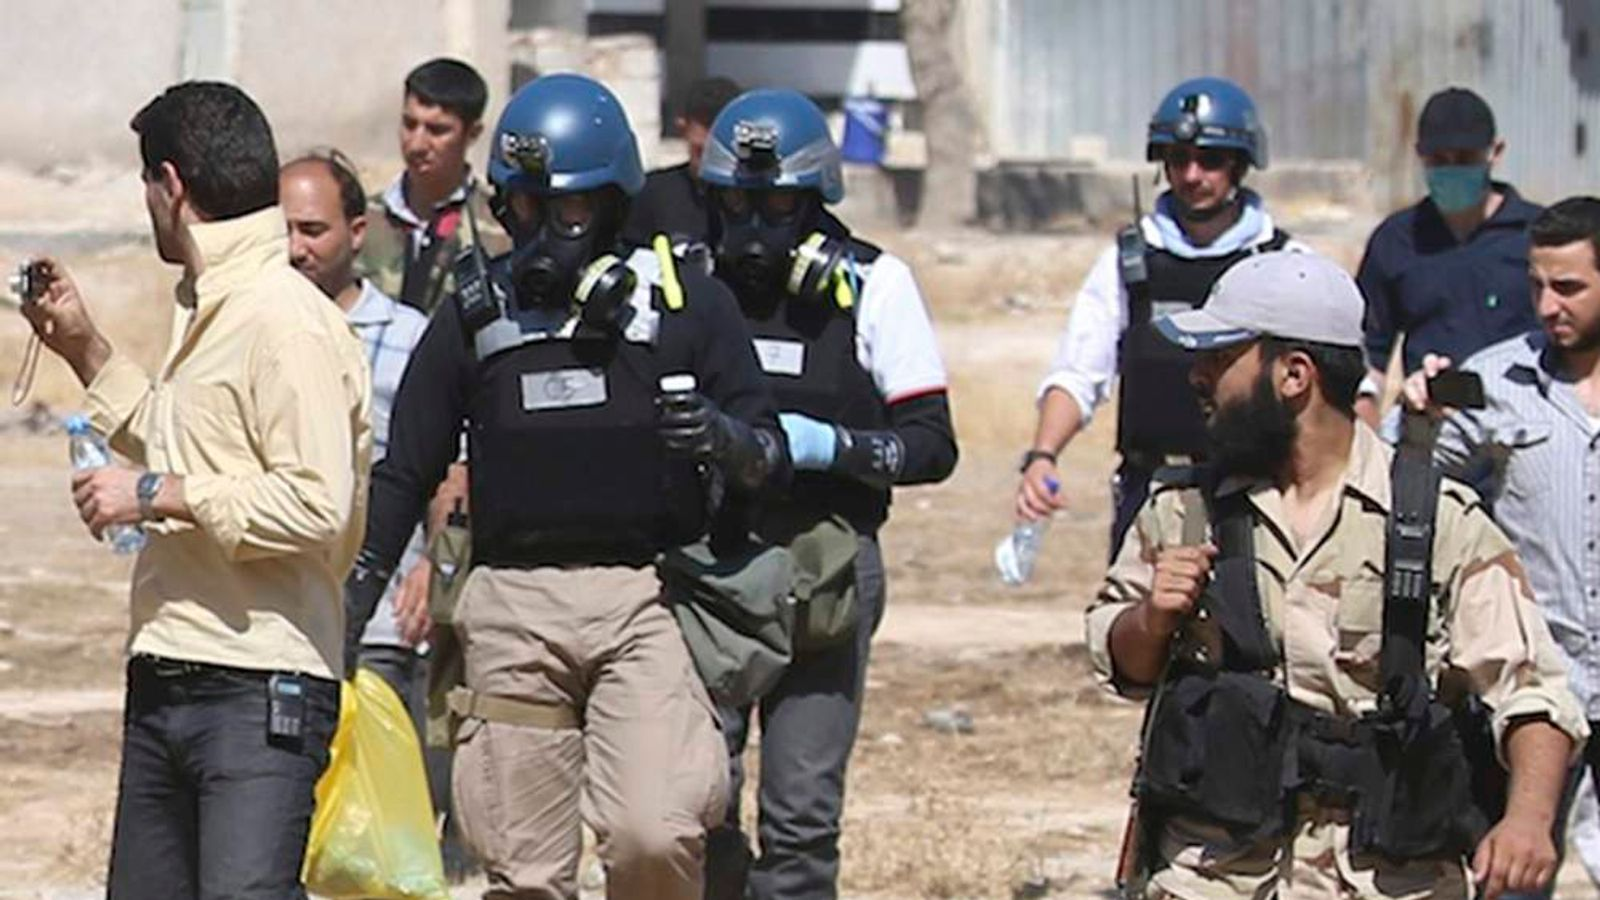 U.N. chemical weapons experts wearing gas masks carry samples collected from one of the sites of an alleged chemical weapons attack while escorted by Free Syrian Army fighters in the Ain Tarma neighbourhood of Damascus